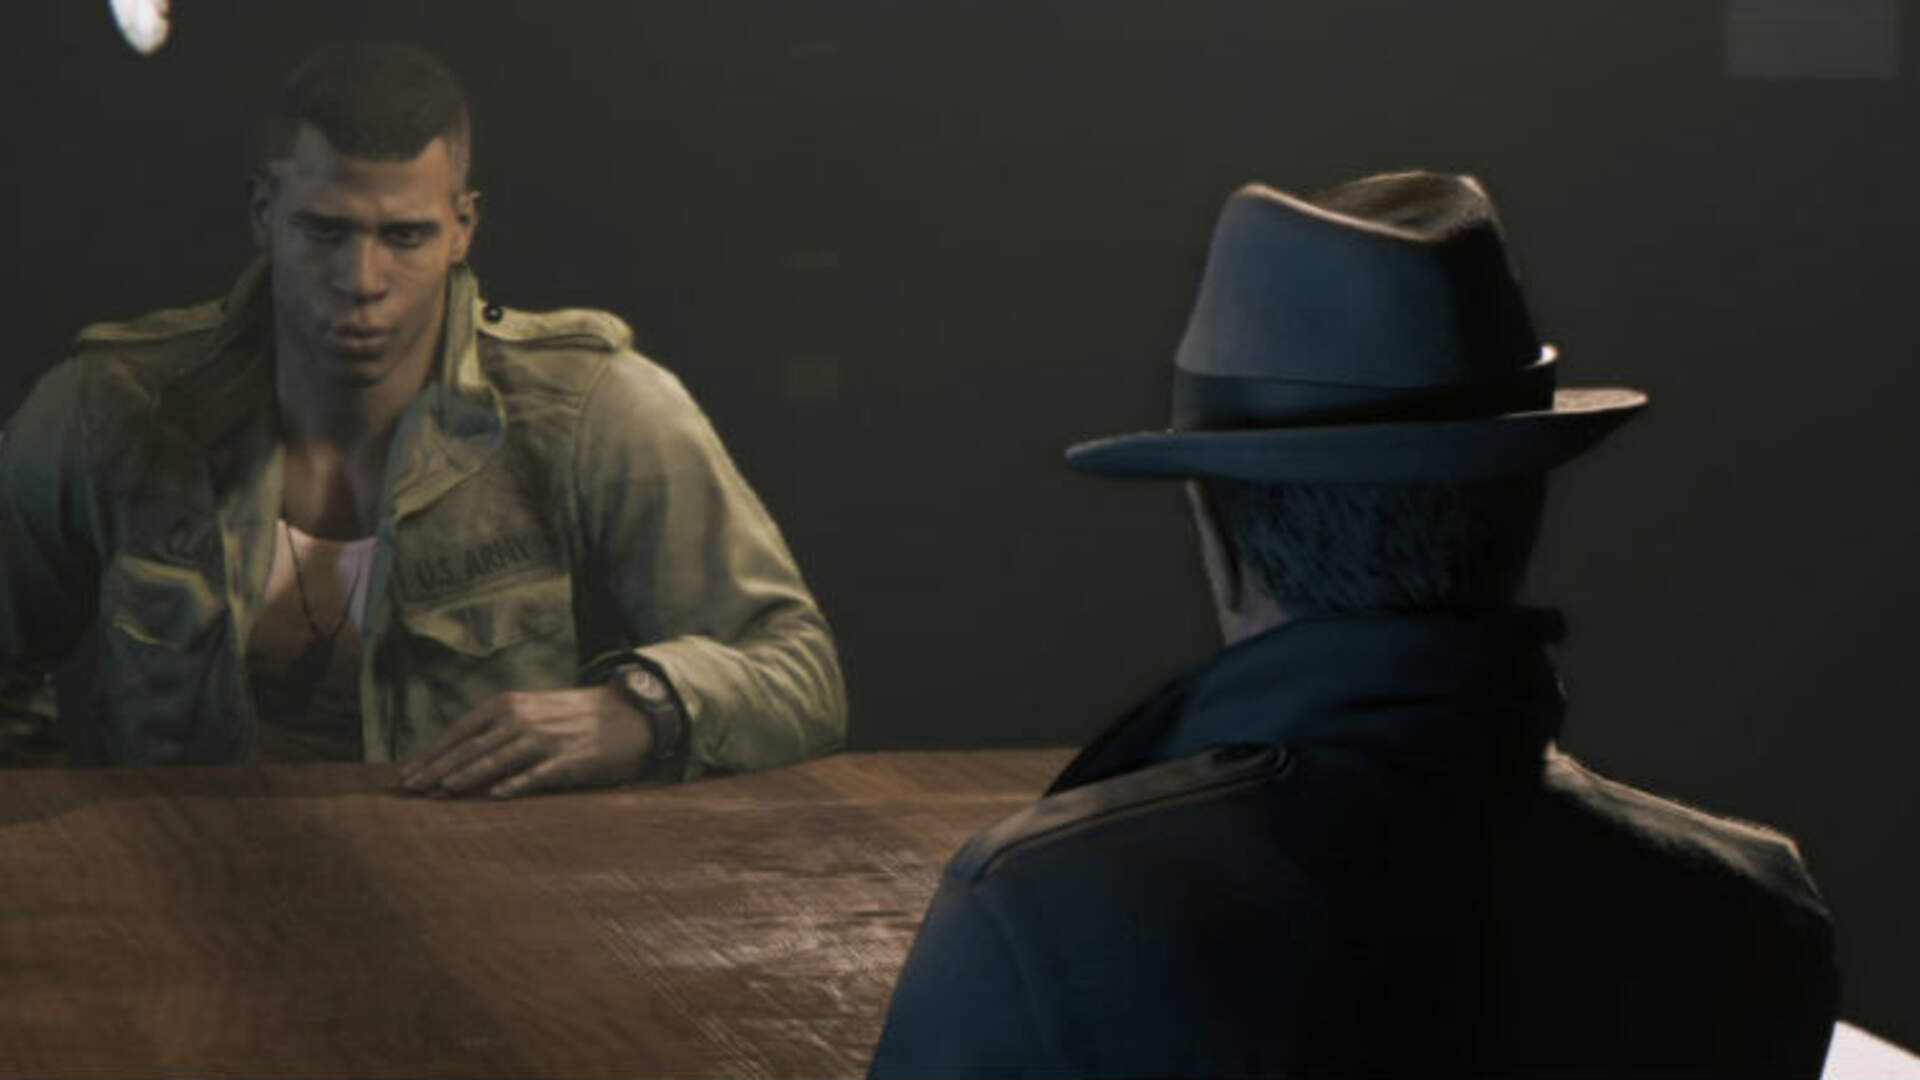 Mafia III's In-Game Content Warning Is a Smart and Mature Inclusion